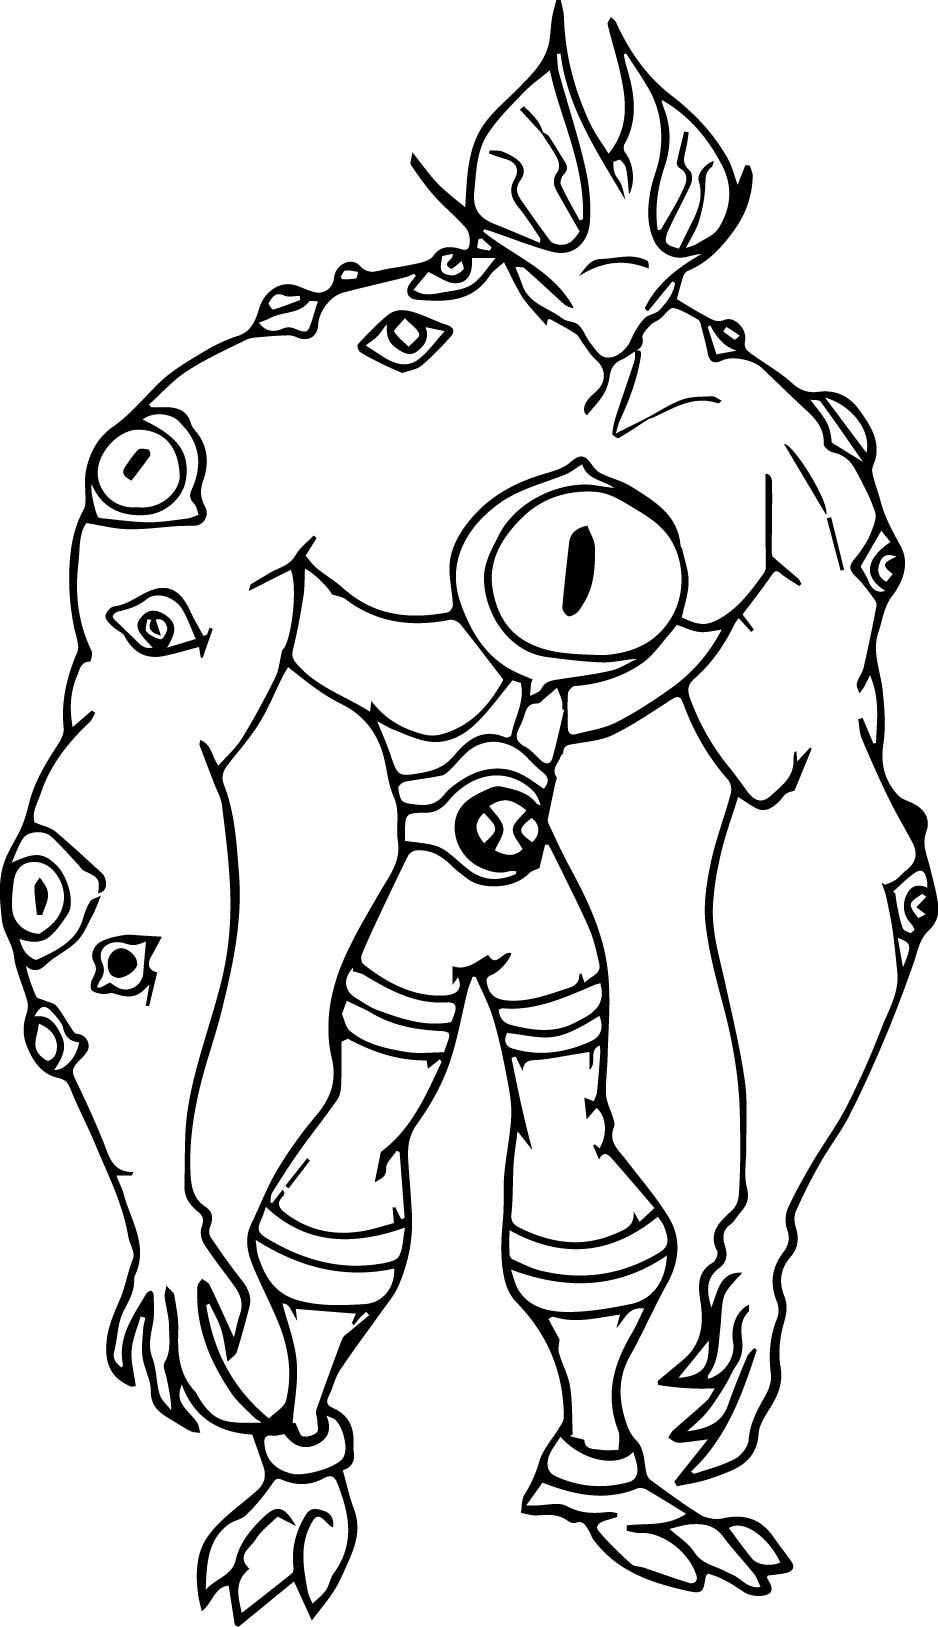 Awesome Ben 10 Swampfire Coloring Pages Mcoloring